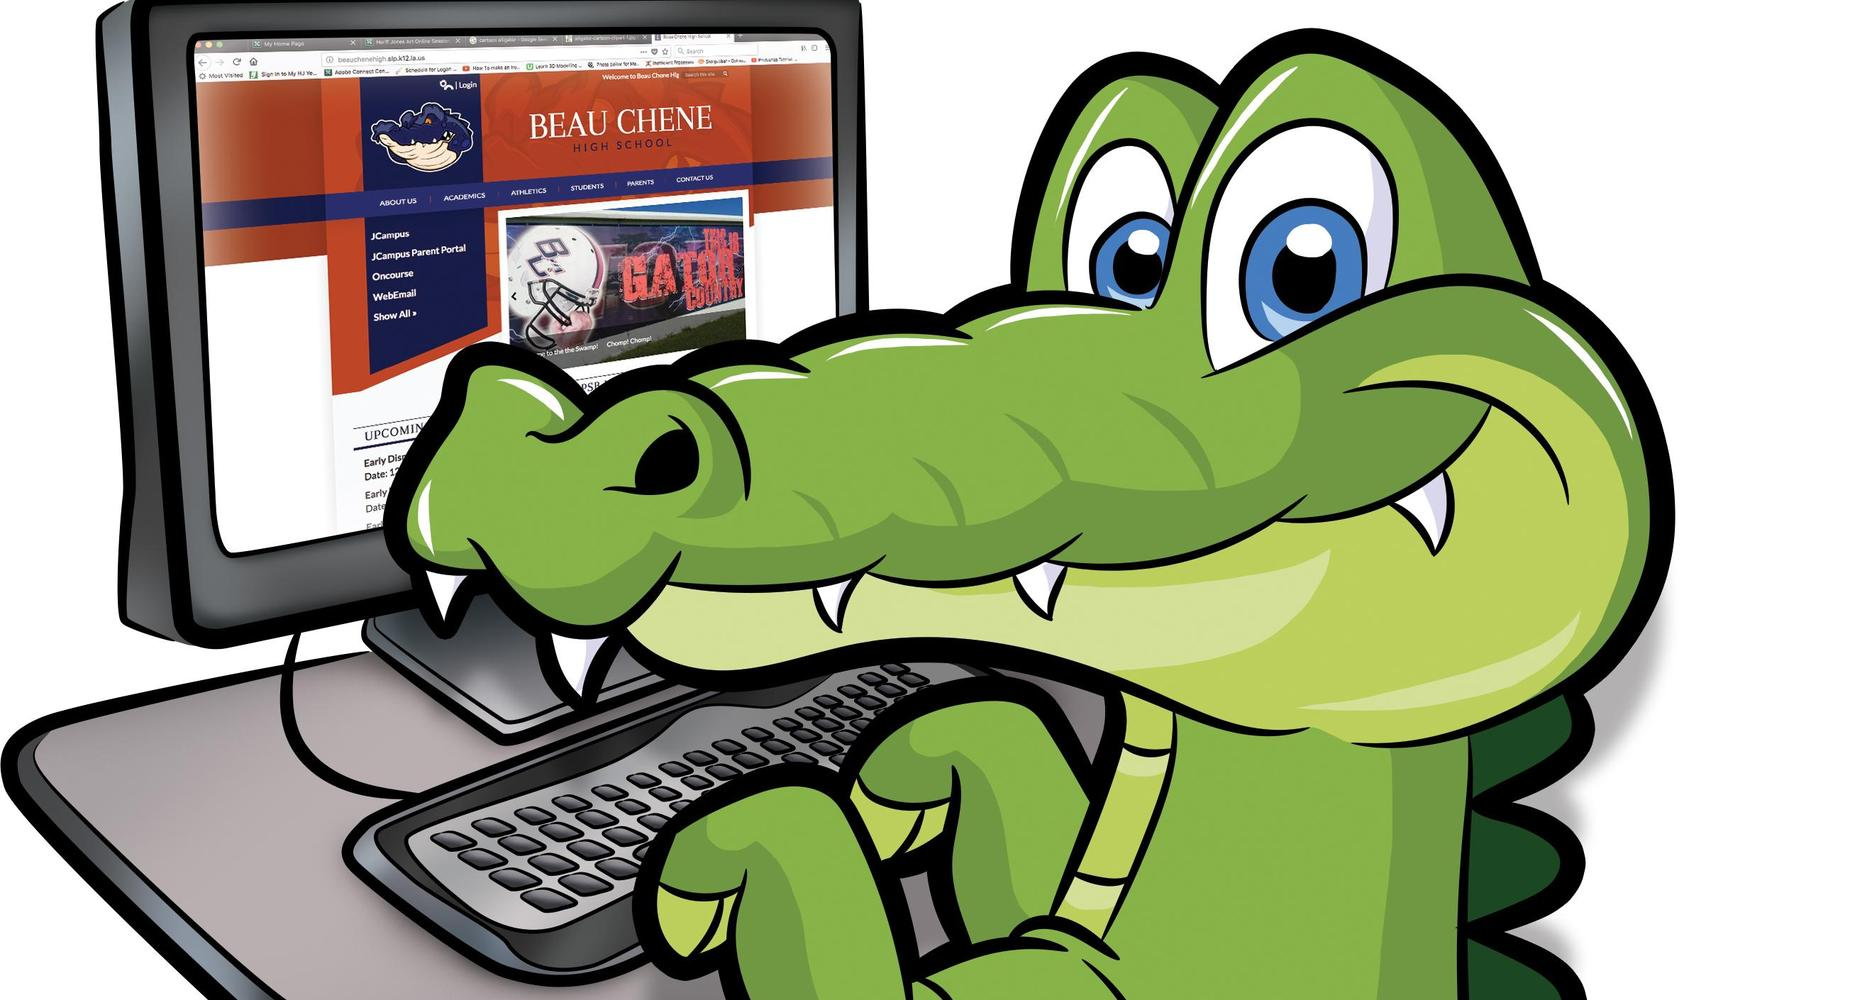 Gator at the computer looking at the website